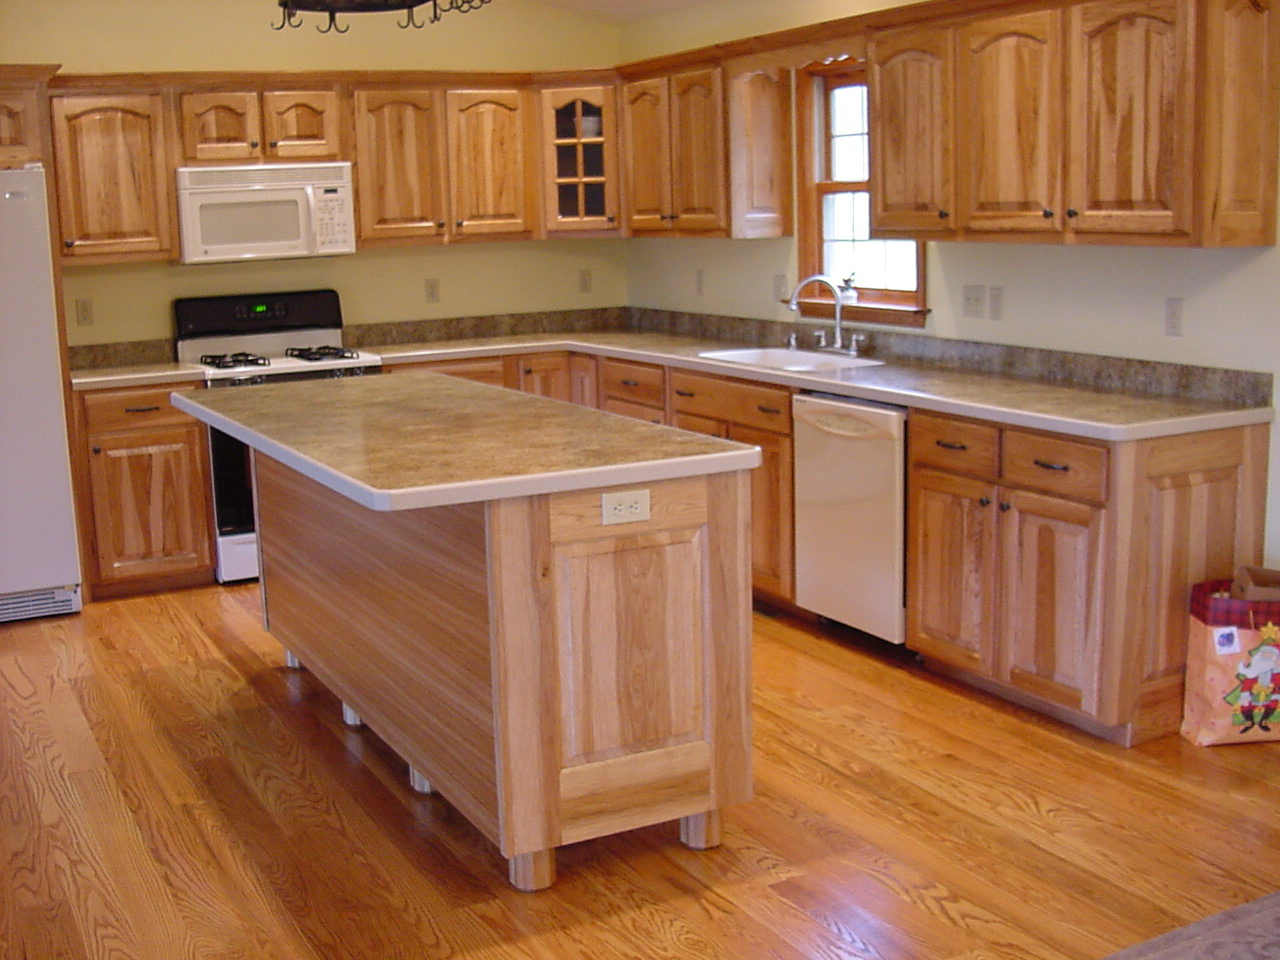 remodeling on kitchen decor com cheap design depot gracereadingseries home countertop budget for the best countertops